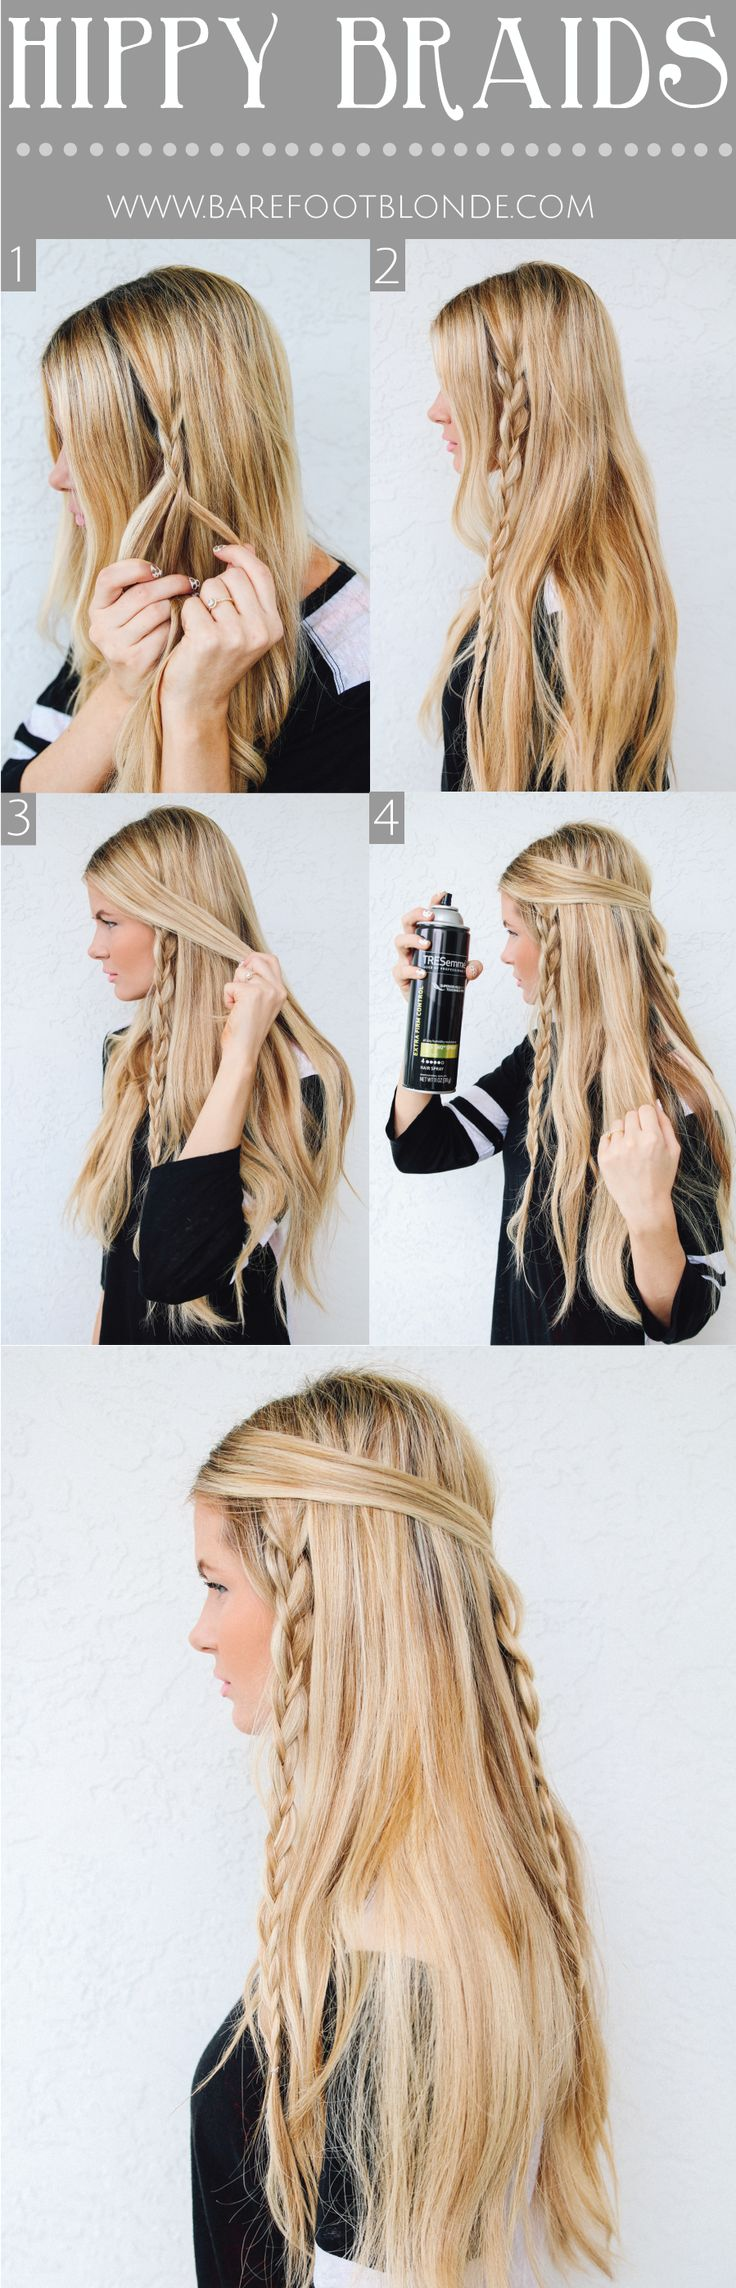 57 best ♥ diy hairstyles ♥ images on pinterest | make up